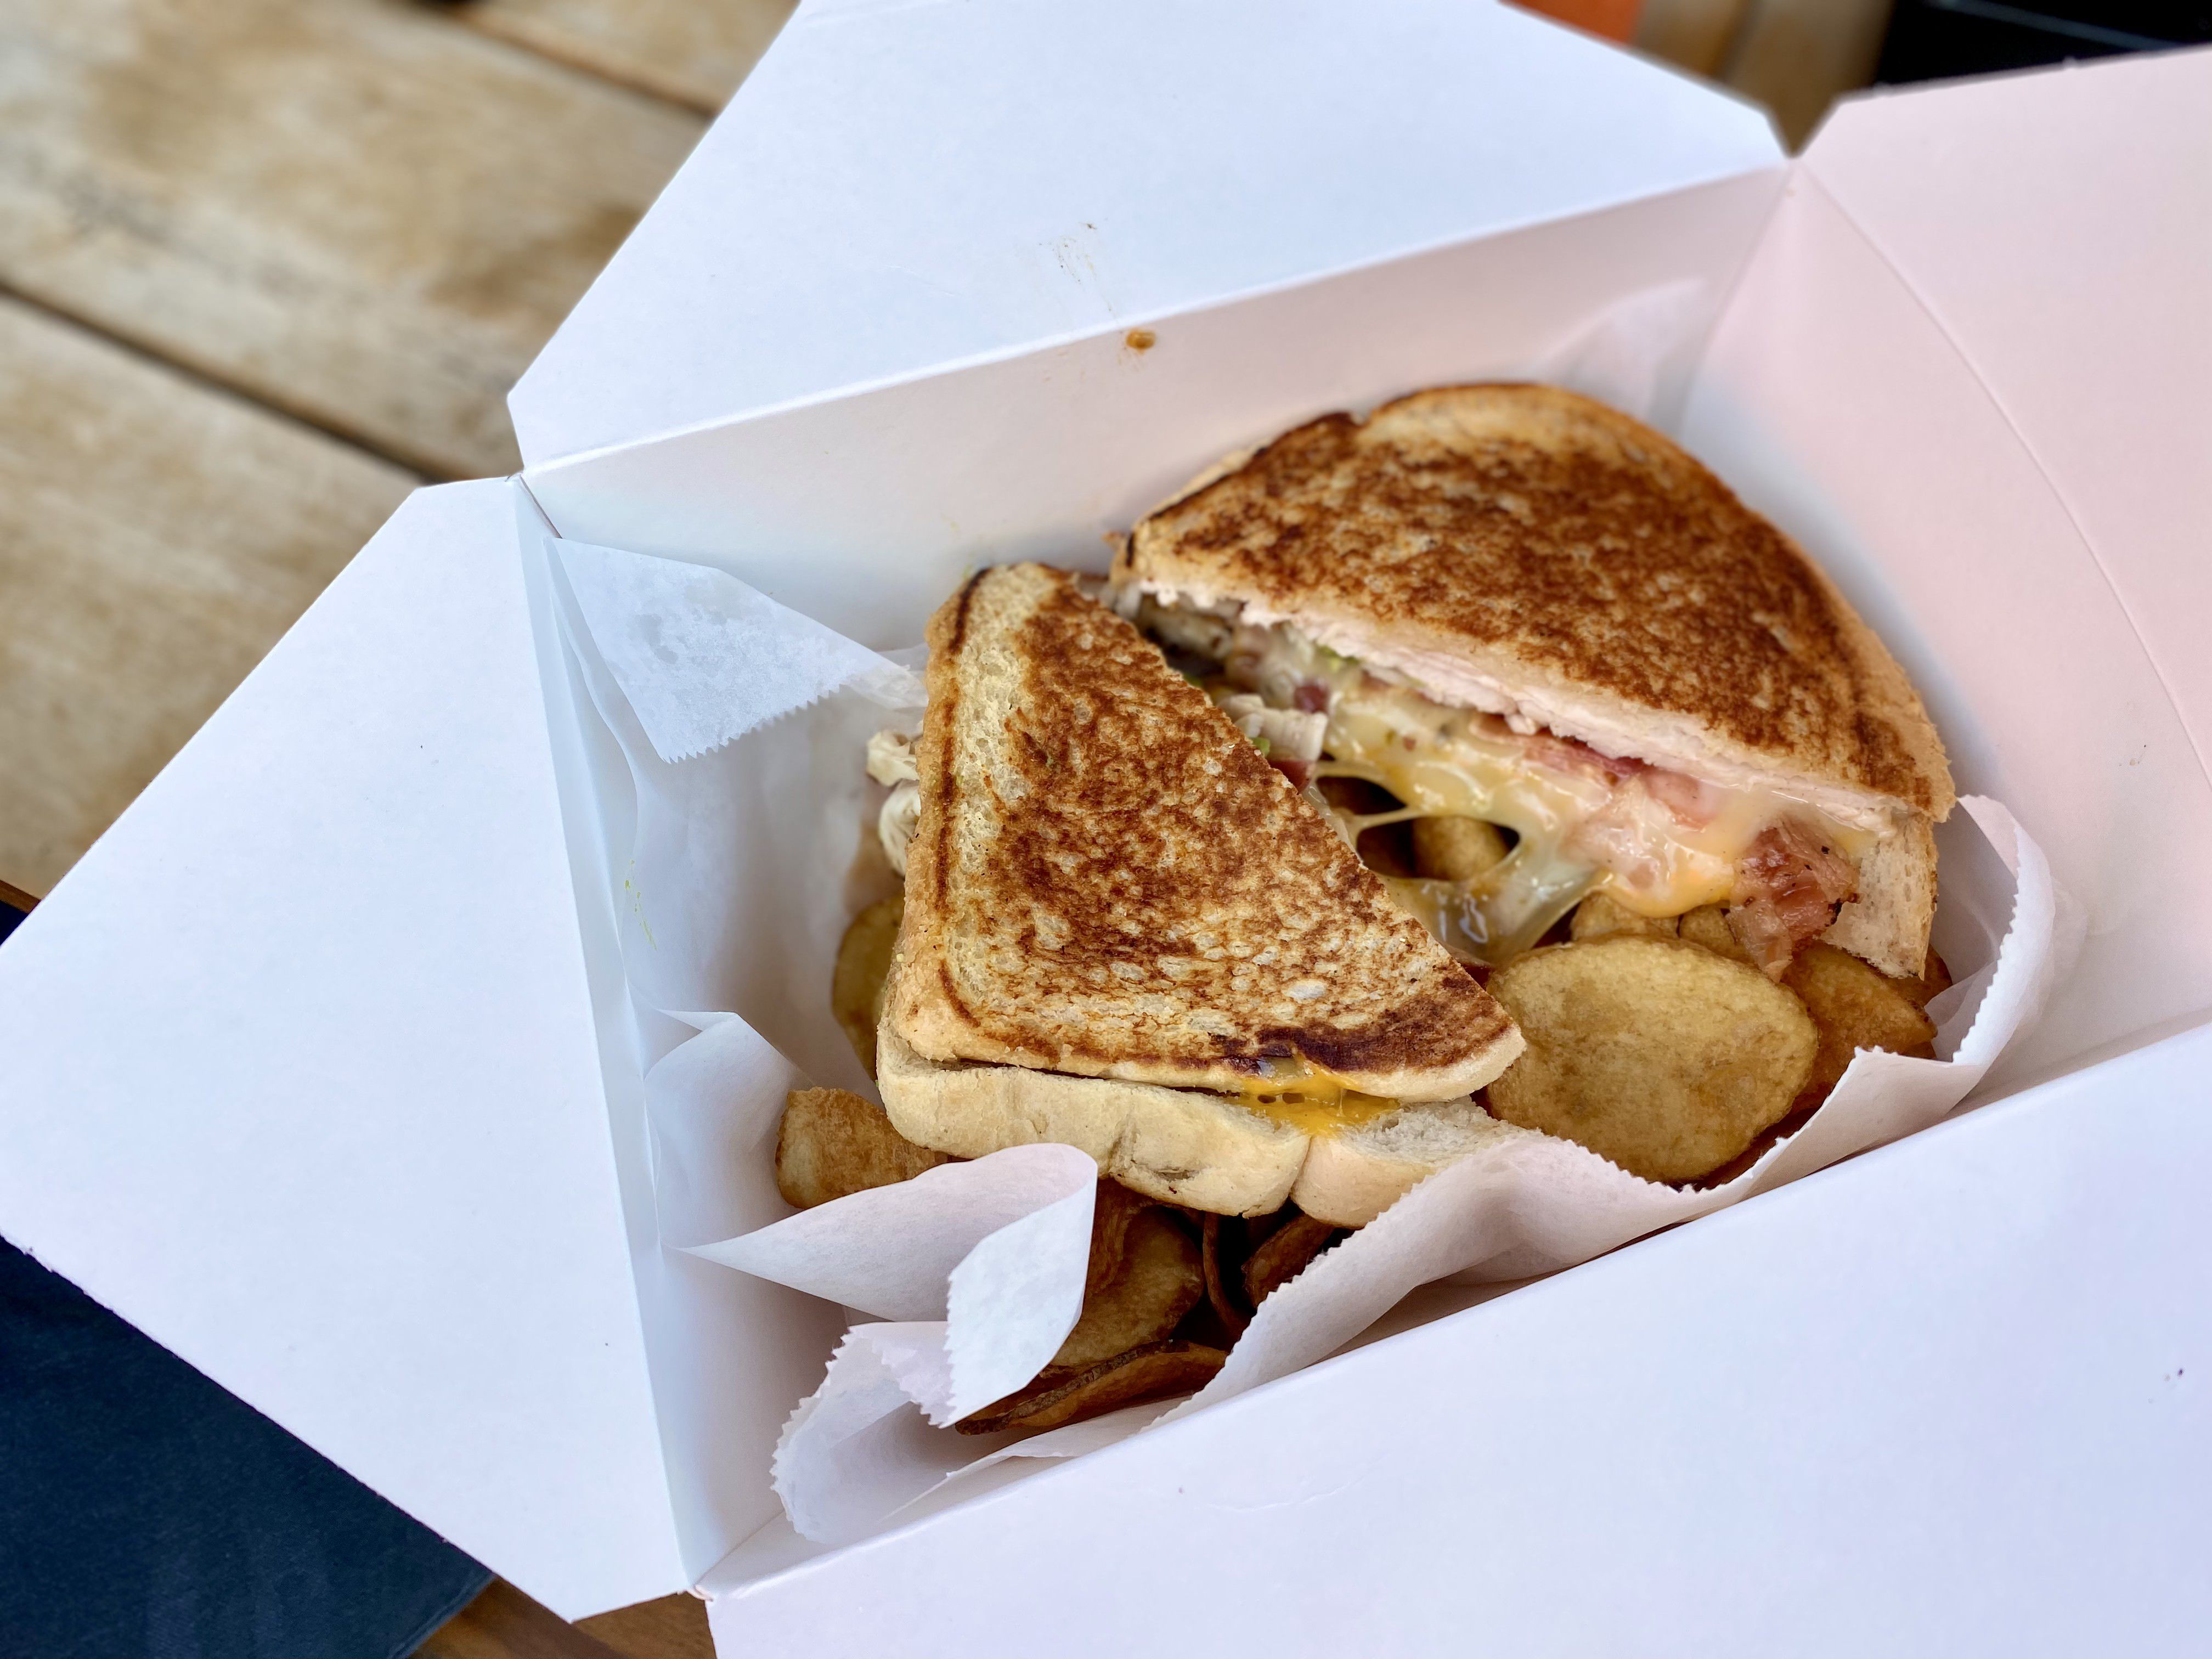 A sandwich and fries from Wich, Please.  Photo credit: Ben Montgomery / Axios